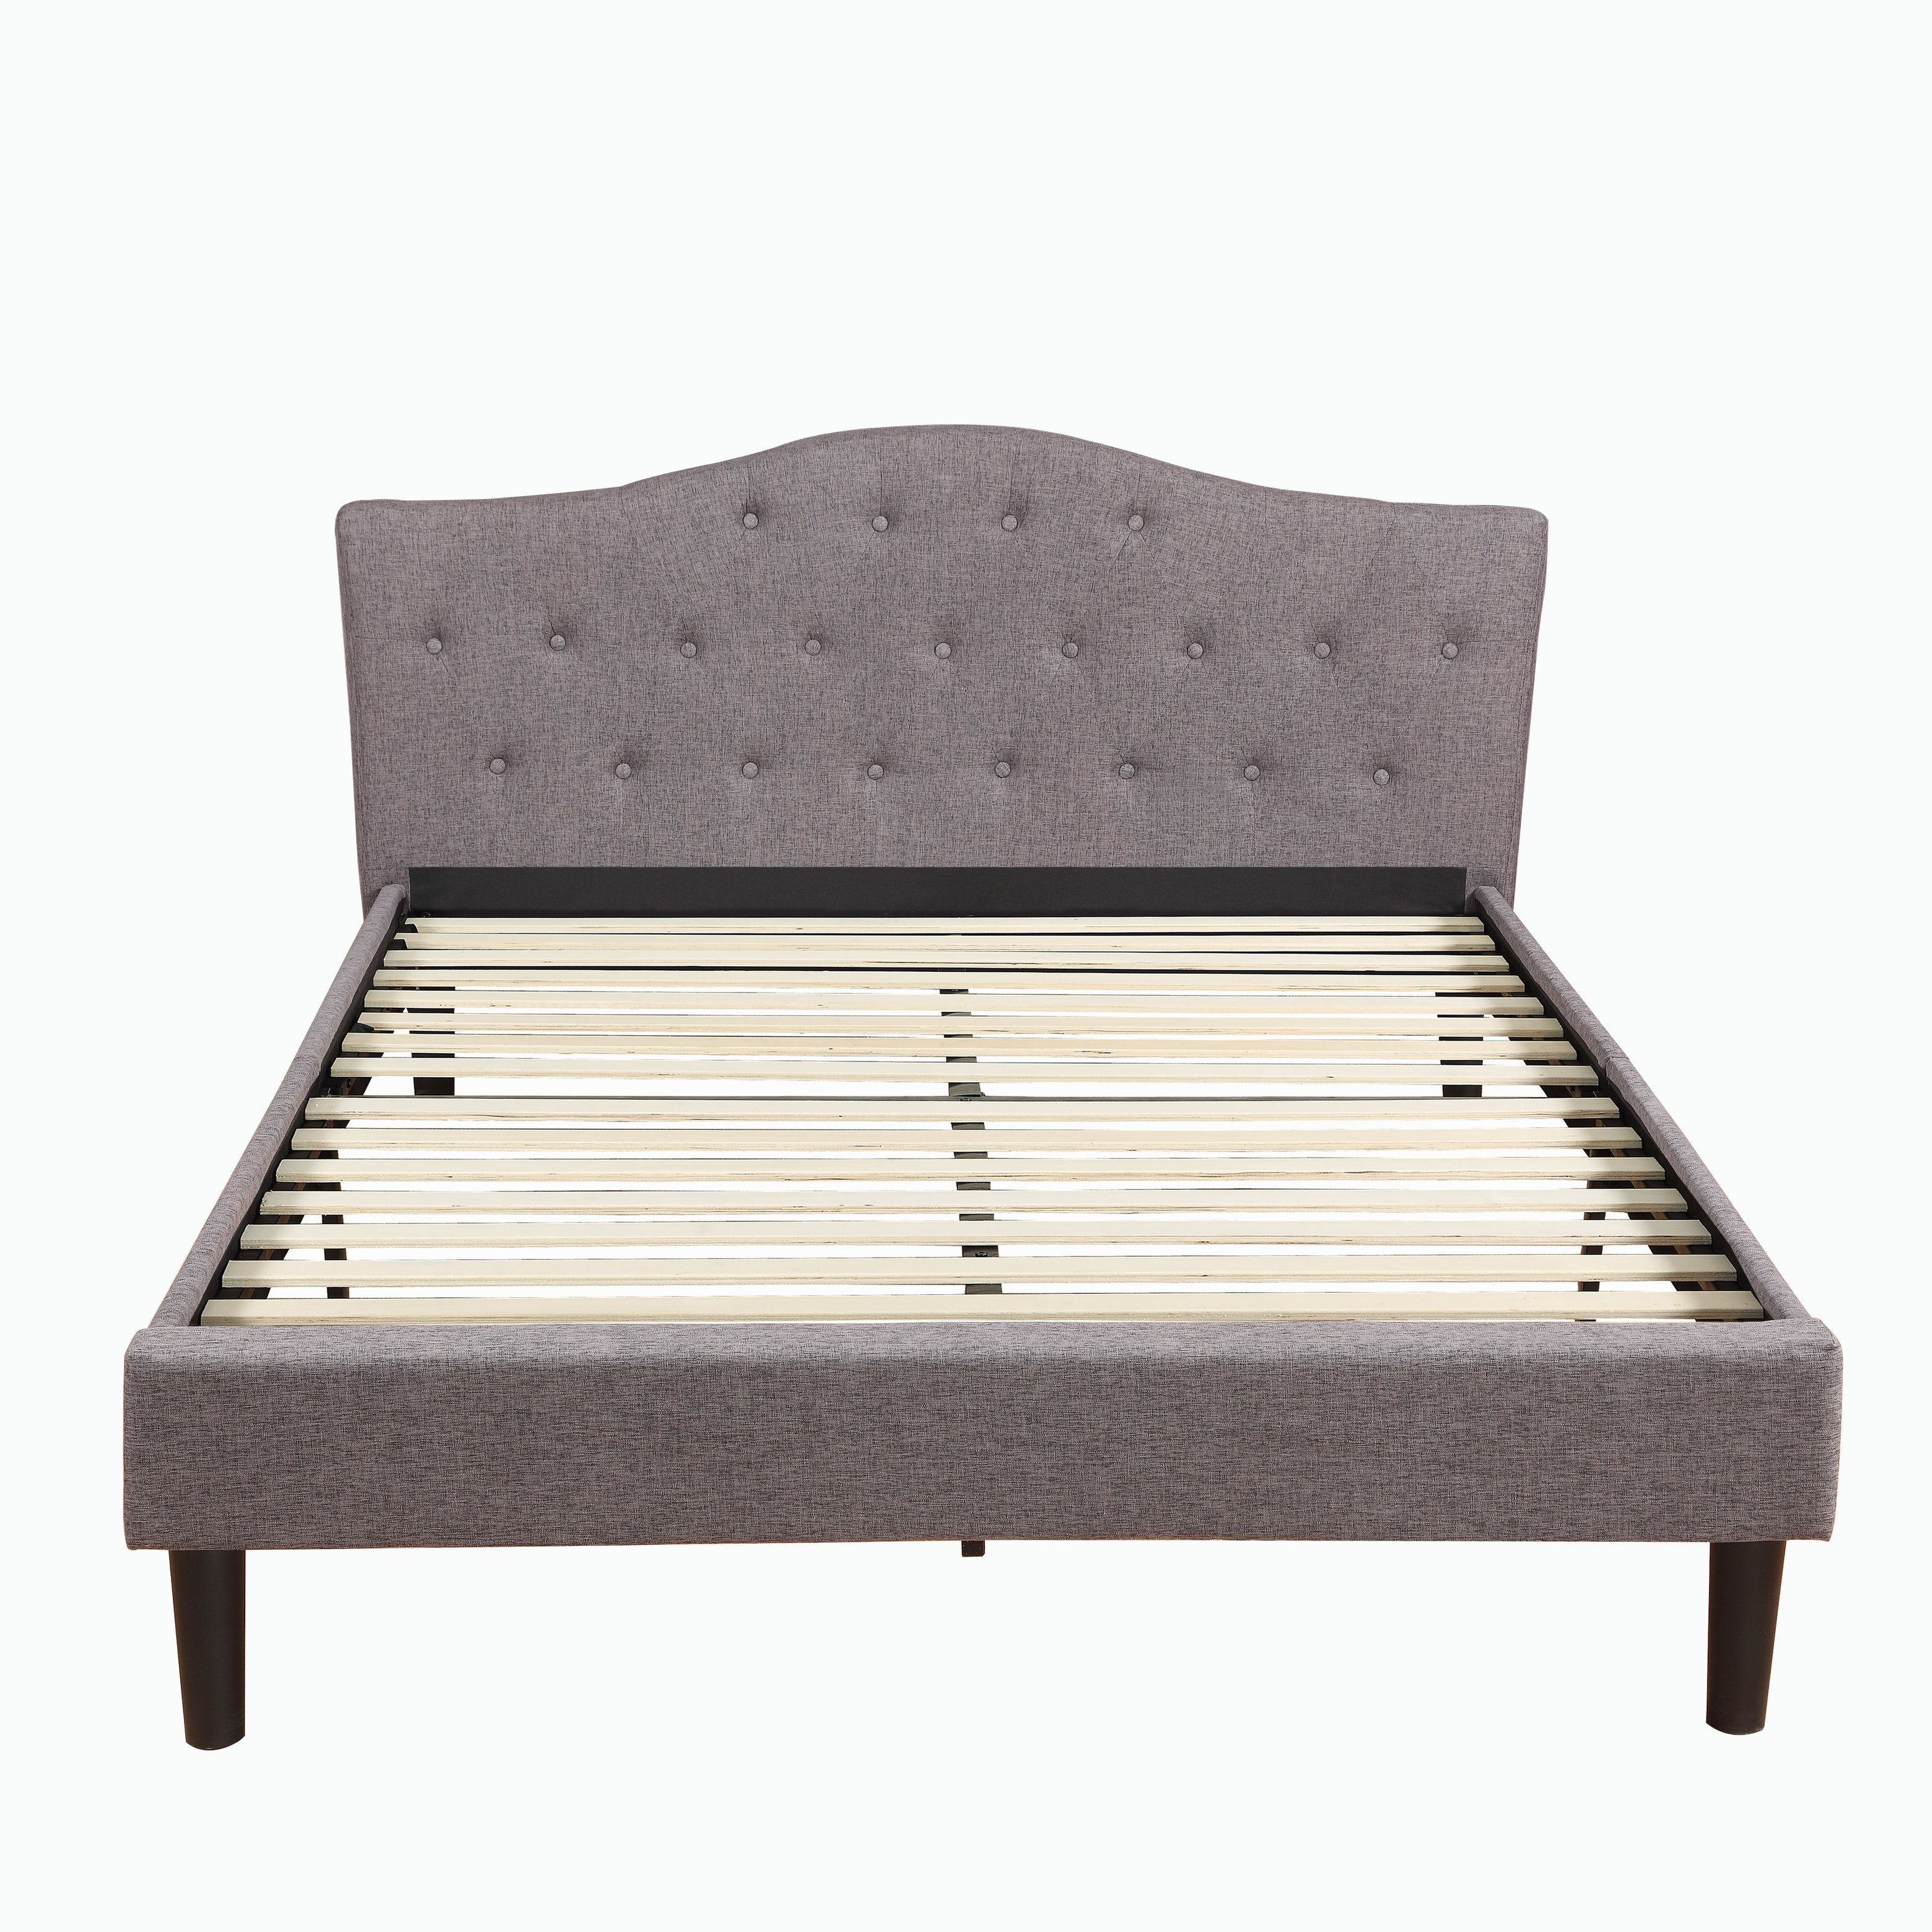 Classic Deluxe Linen Fabric Platform Bed With Wooden Slats In Grey